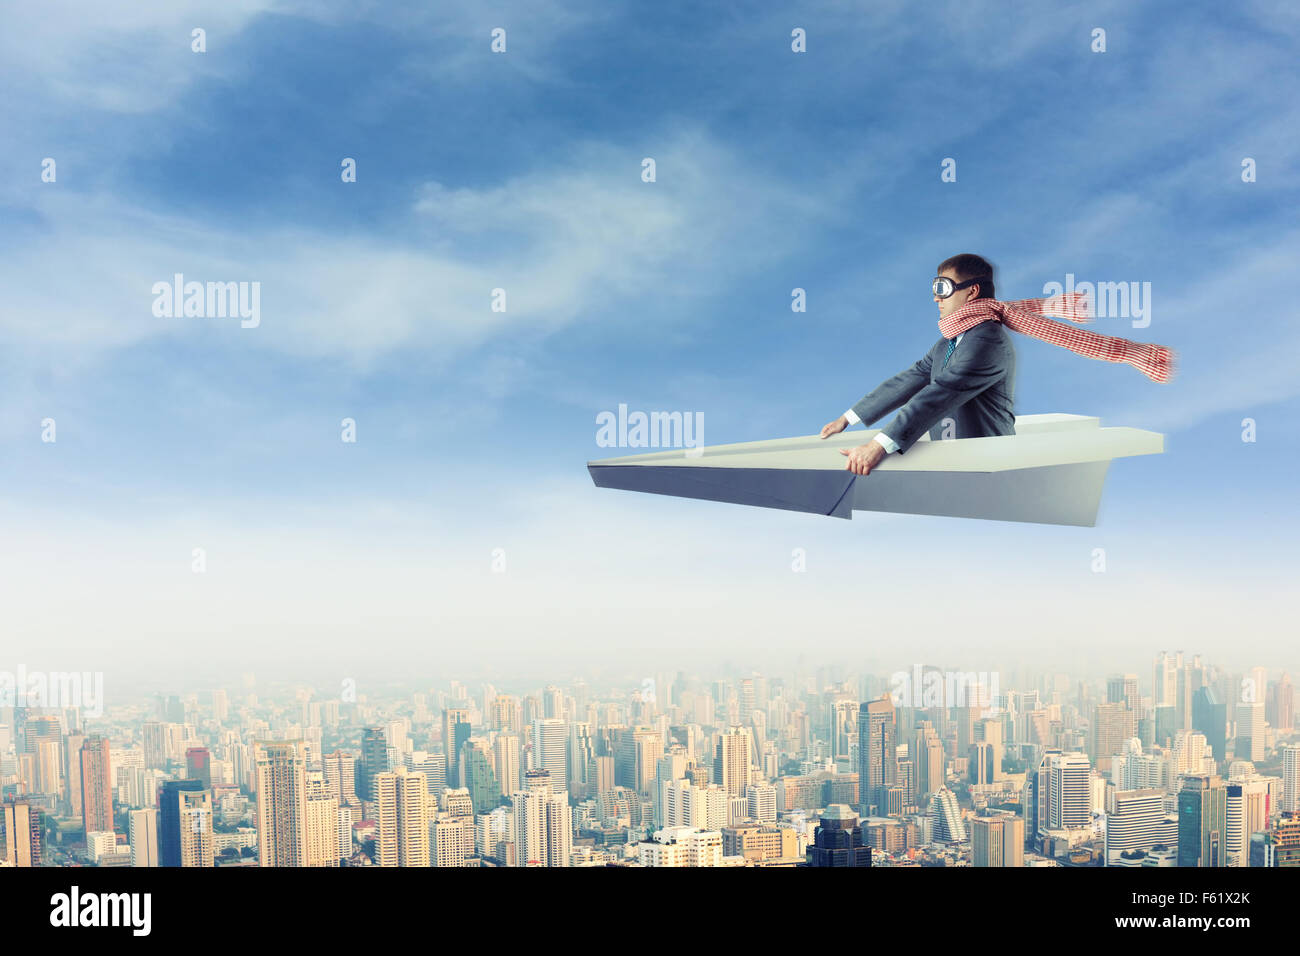 Businessman with the scarf on paper airplane above the city - Stock Image